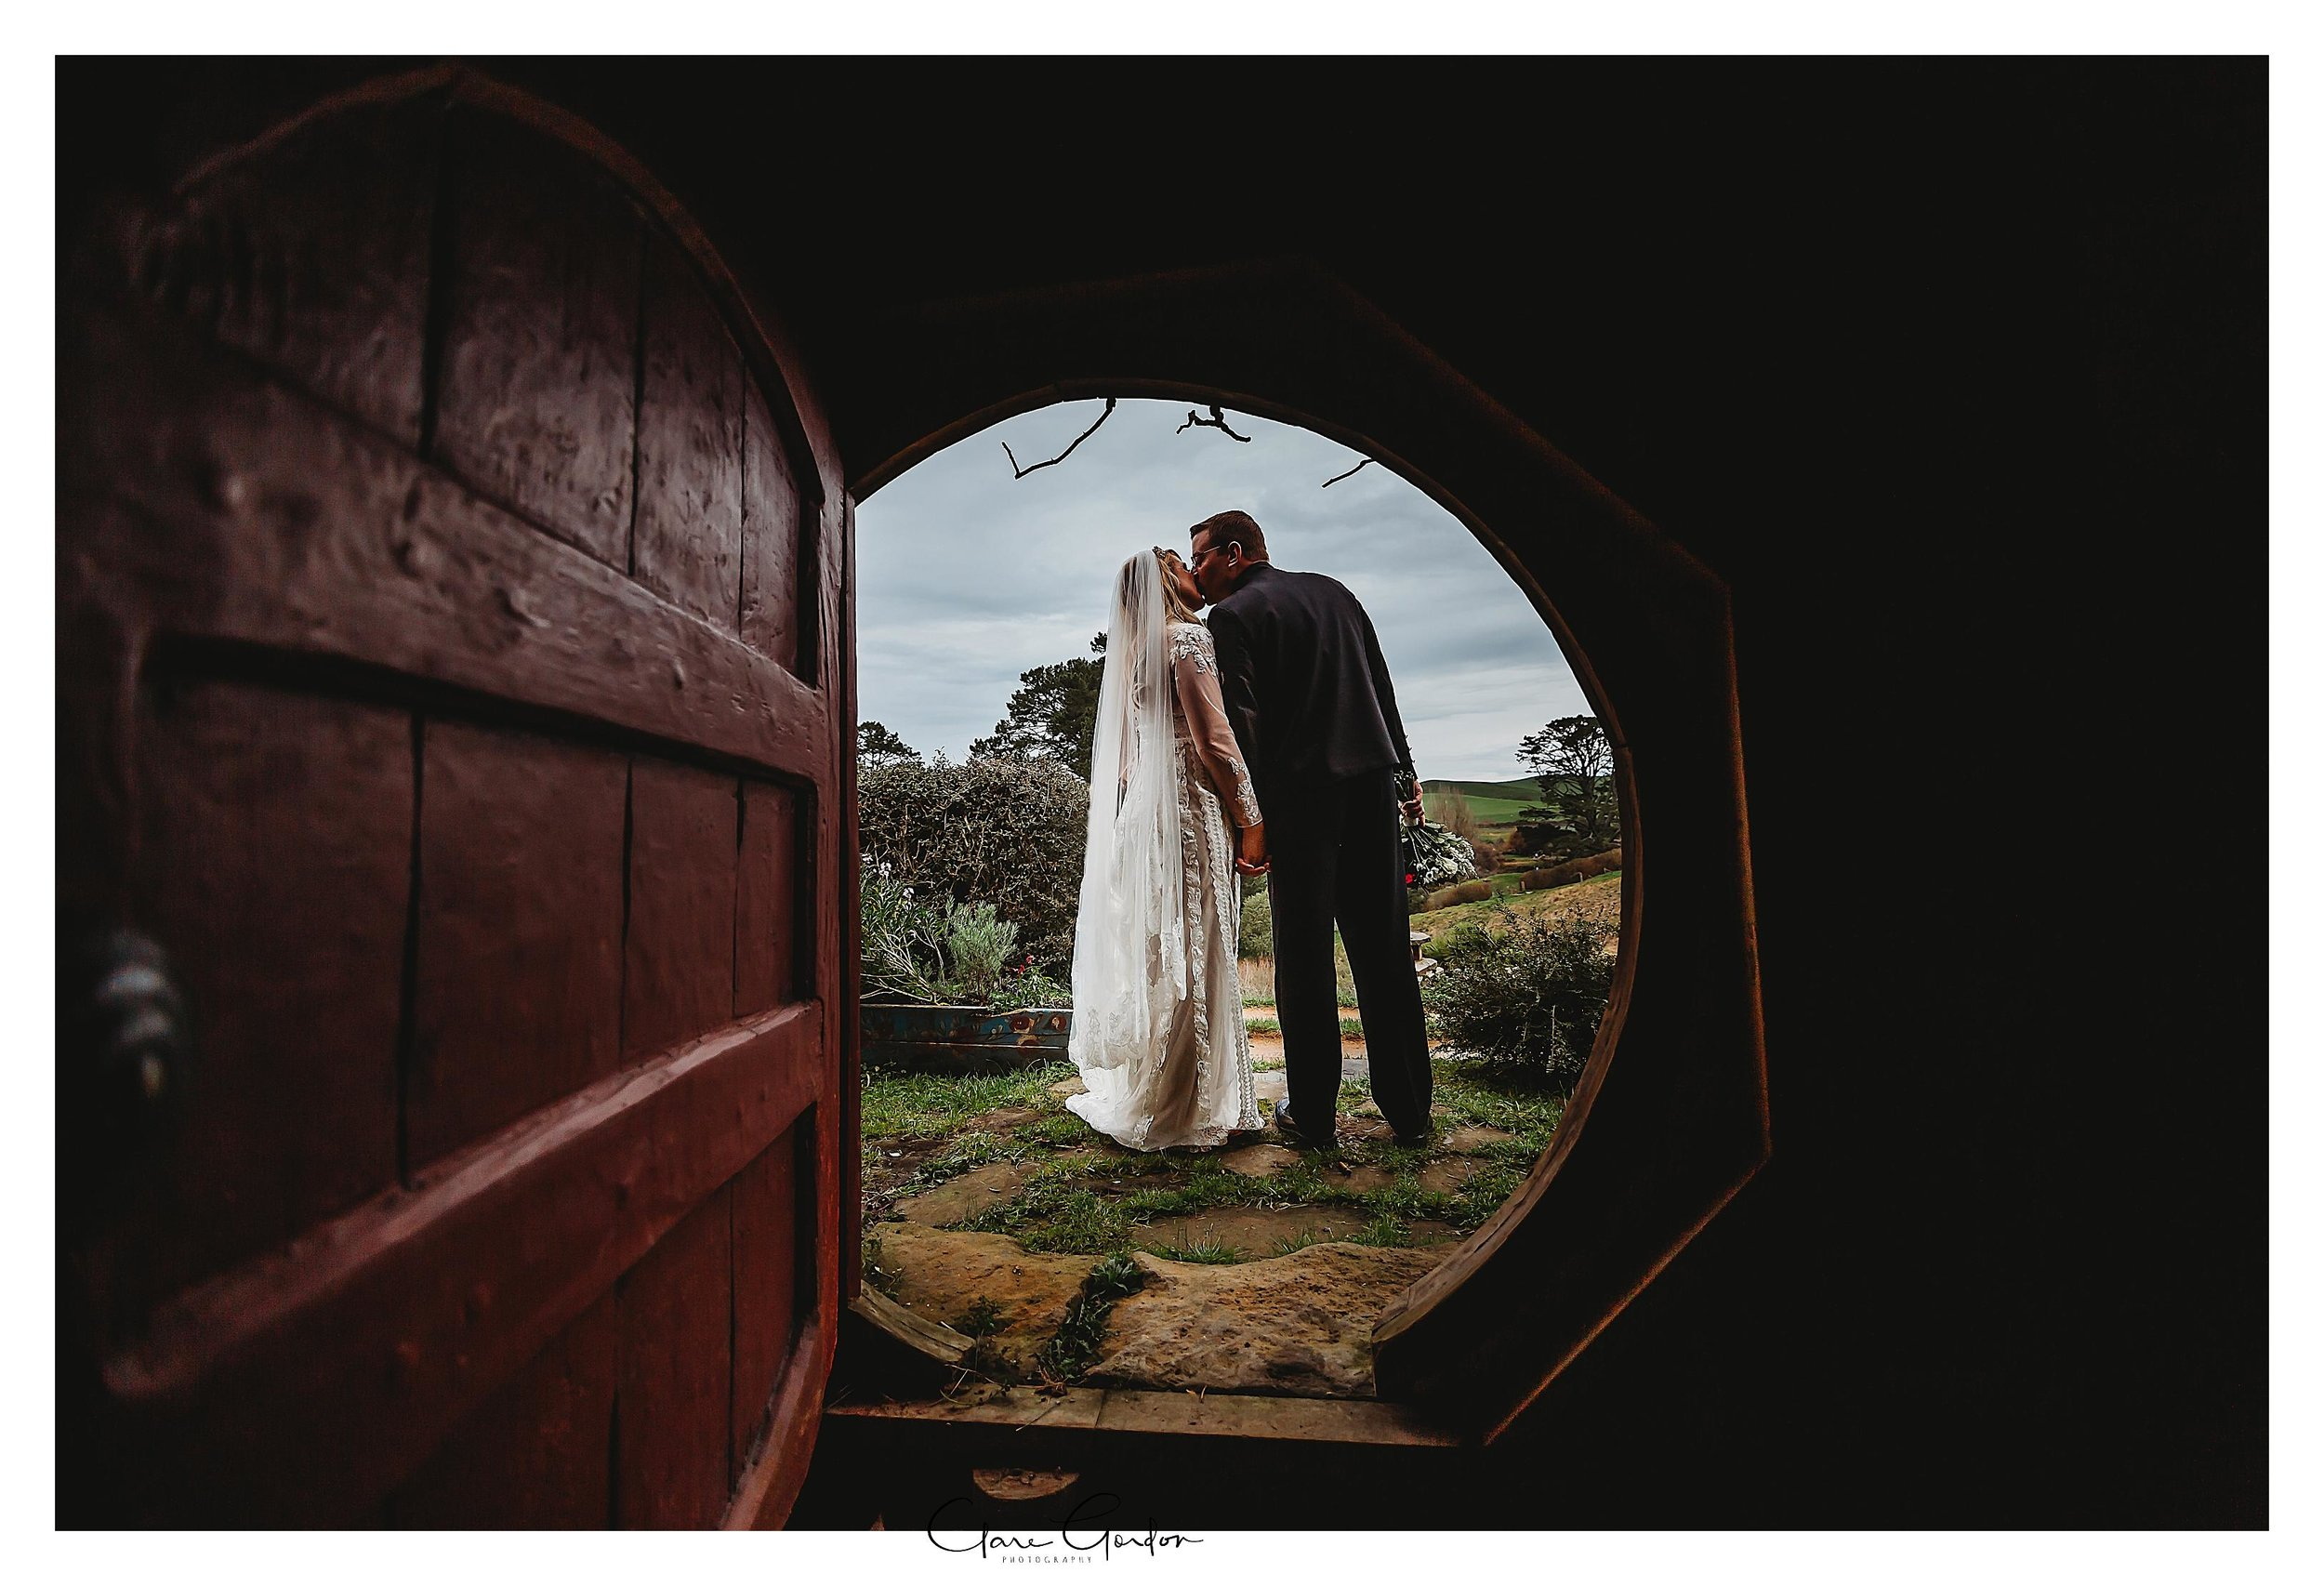 Hobbiton-movie-set-wedding-photo-matamata-bride-and-groom-Photo (3).jpg